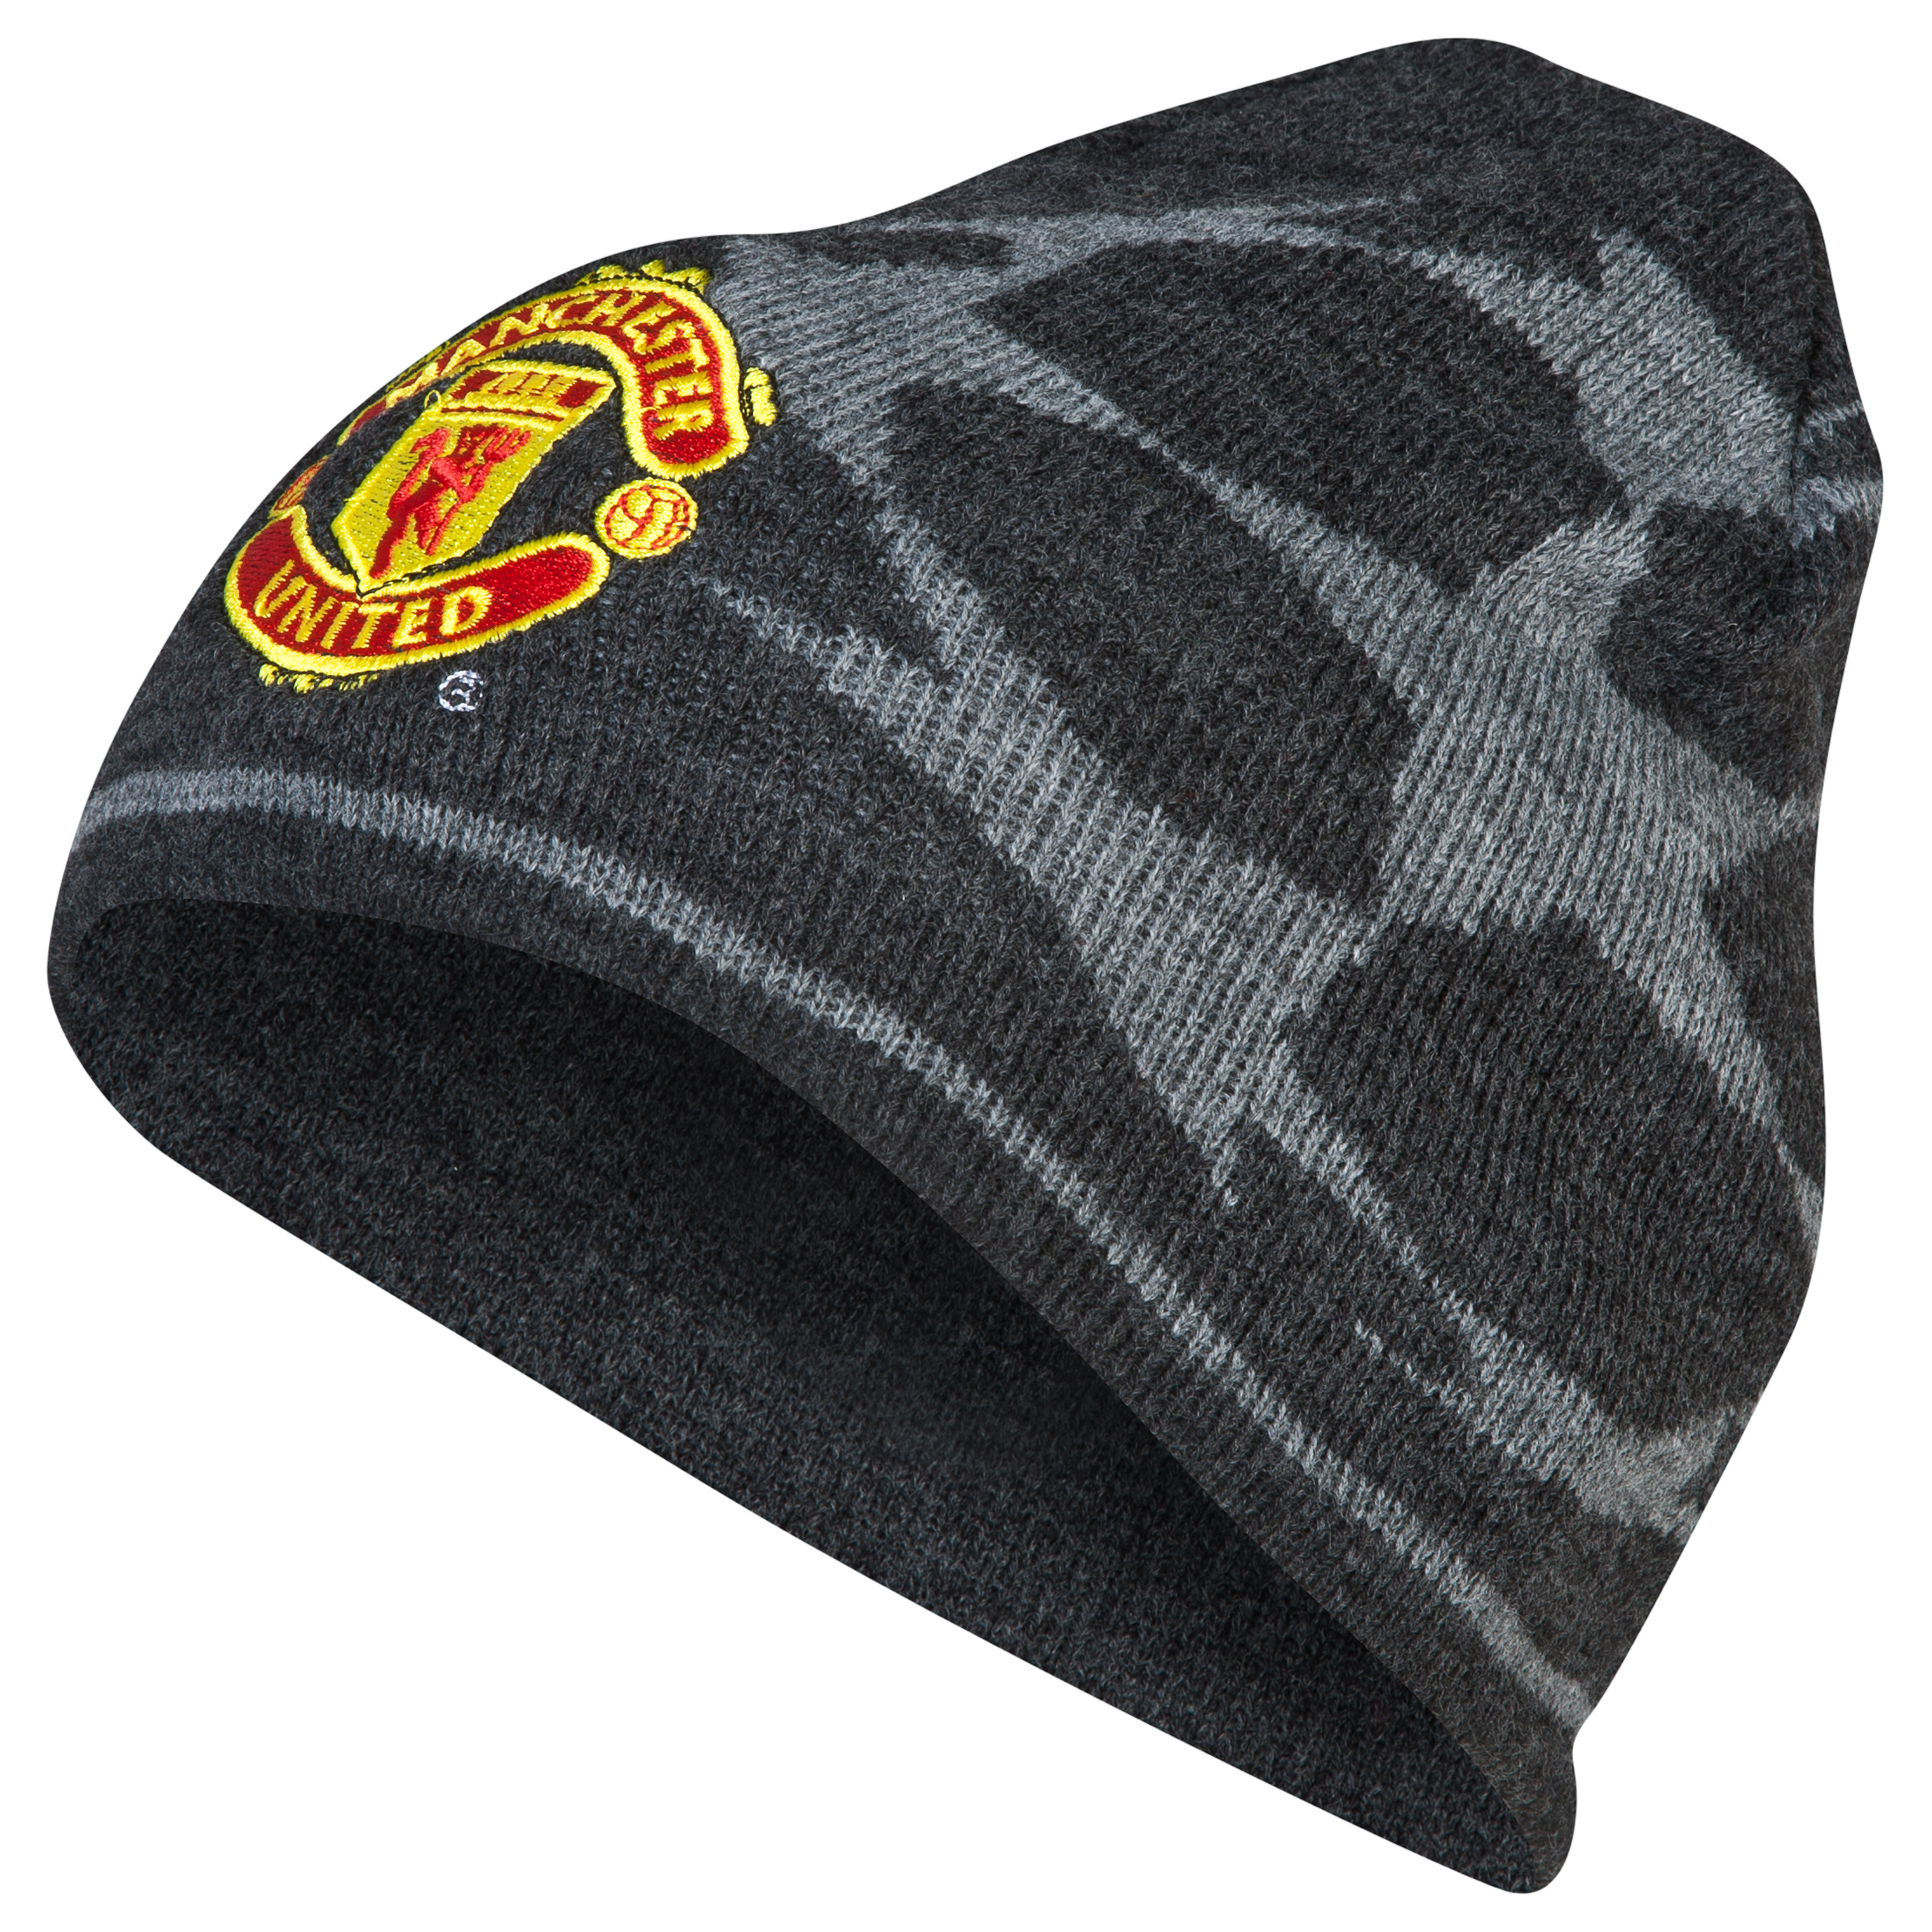 Manchester United UEFA Champions League Star Ball Beanie Hat - Charcoal